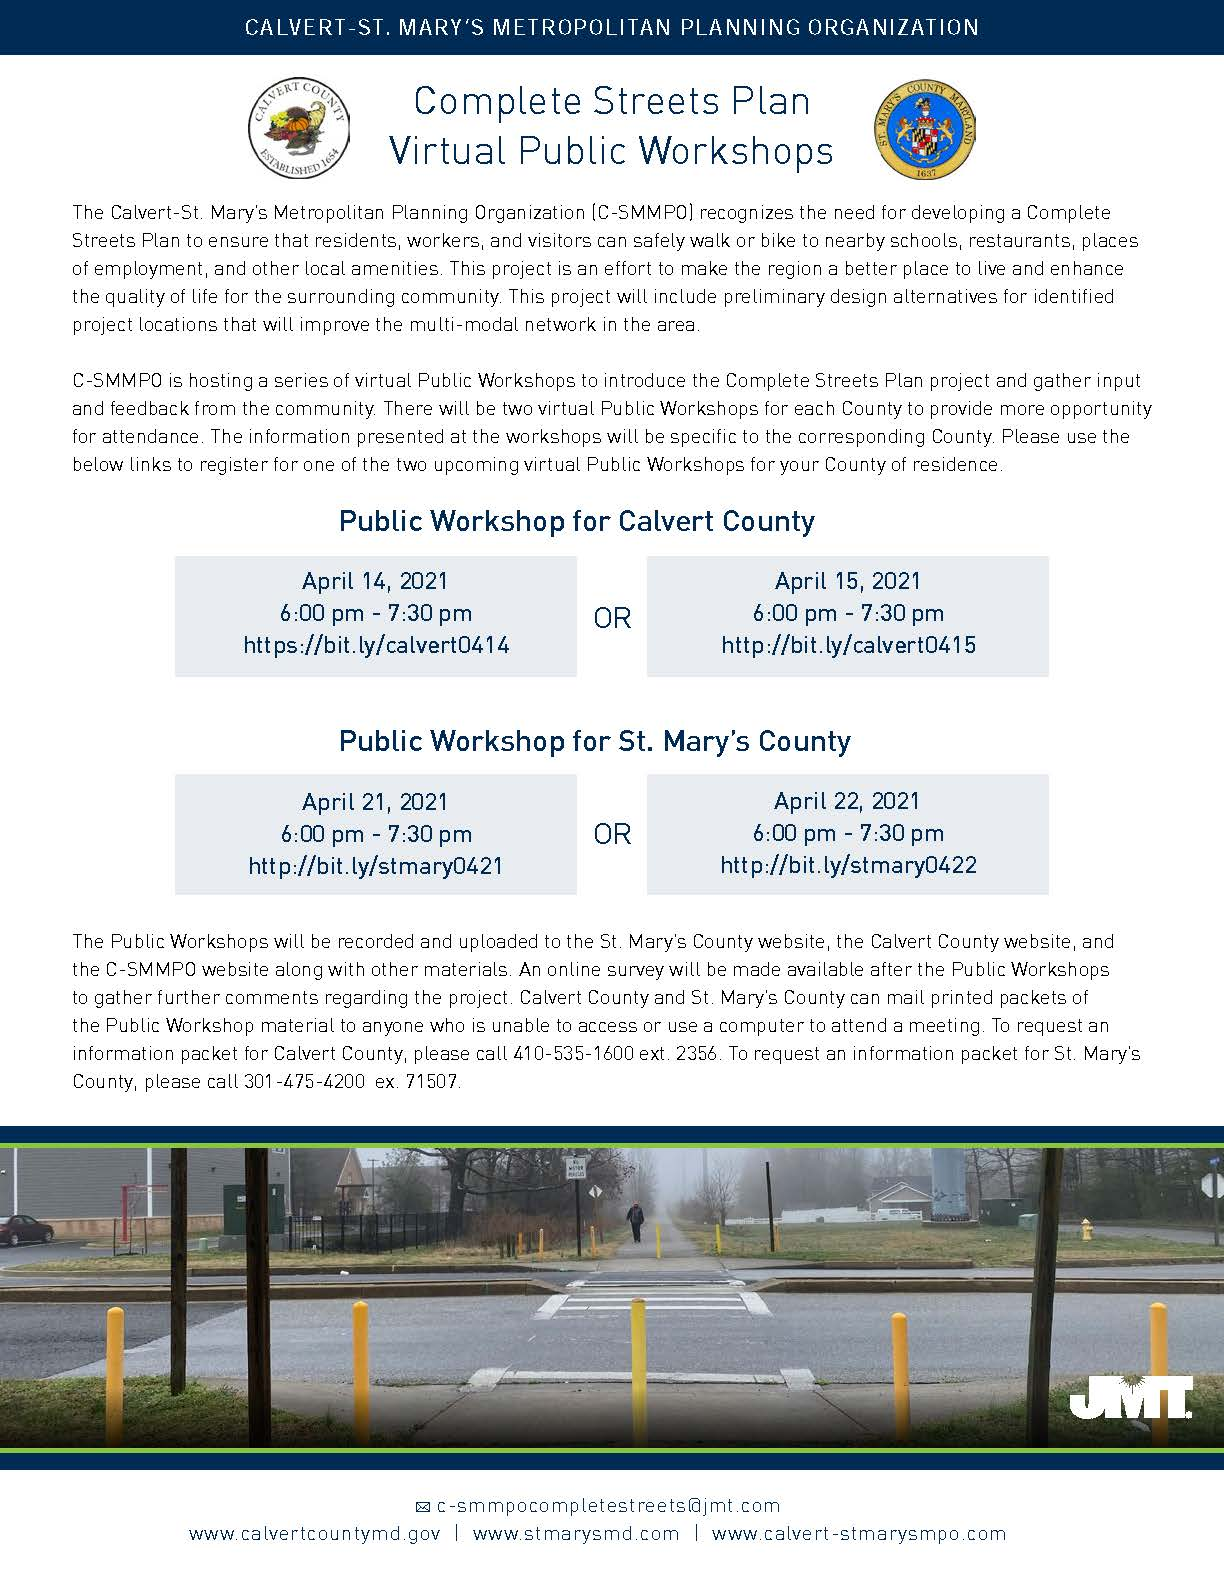 C-SMMPO Public Workshop Flyer